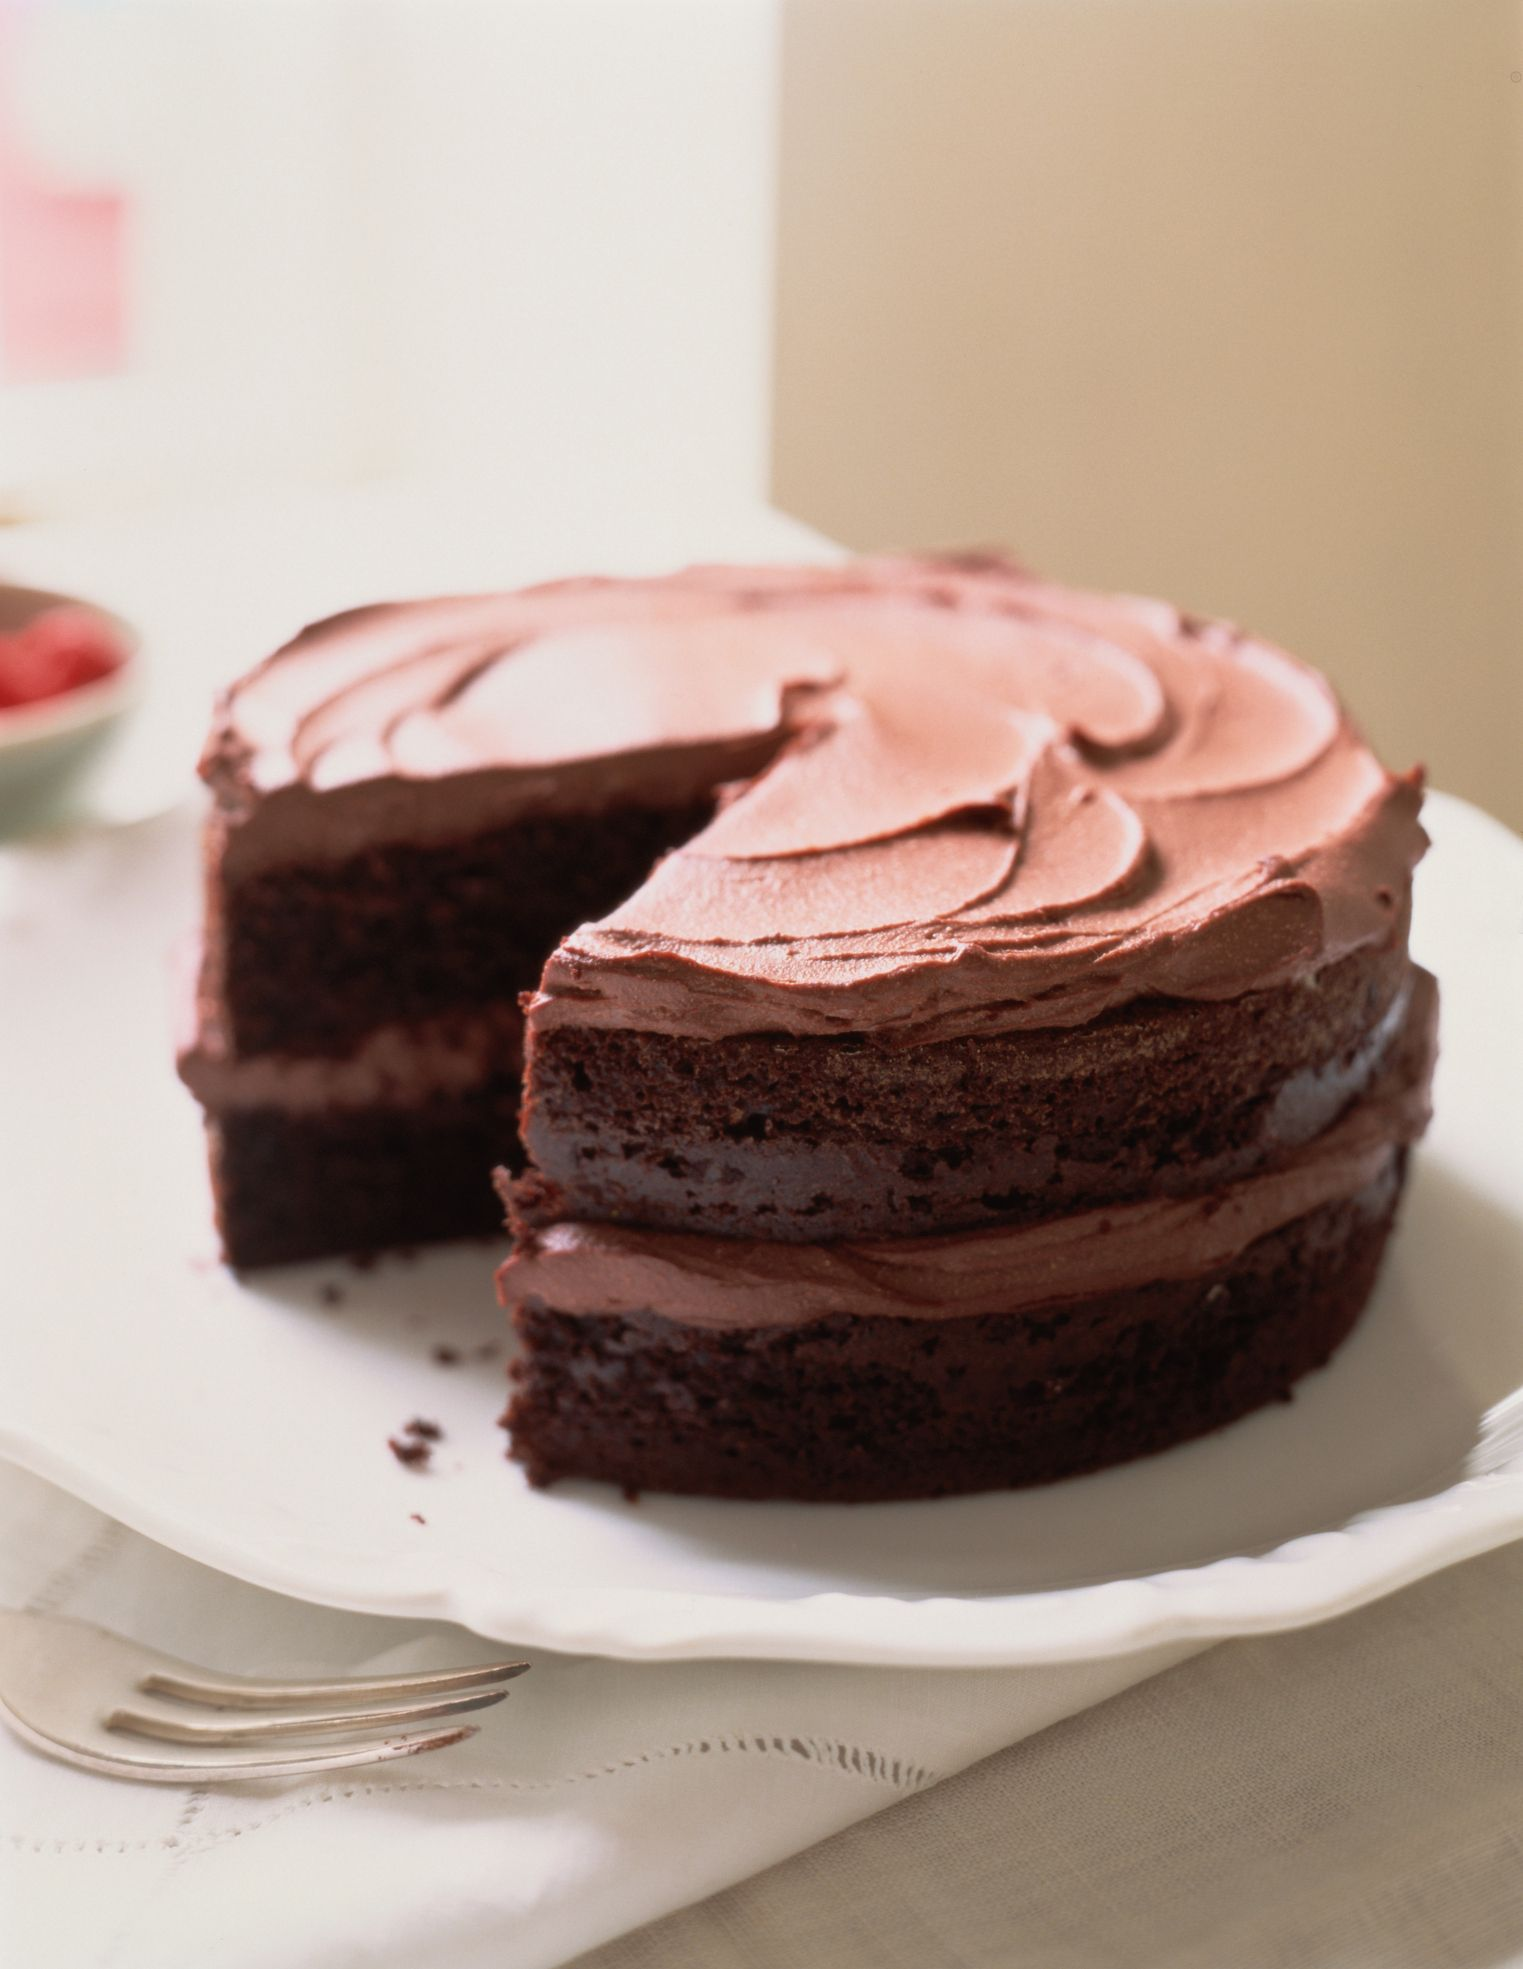 How to make chocolate butter icing mary berry